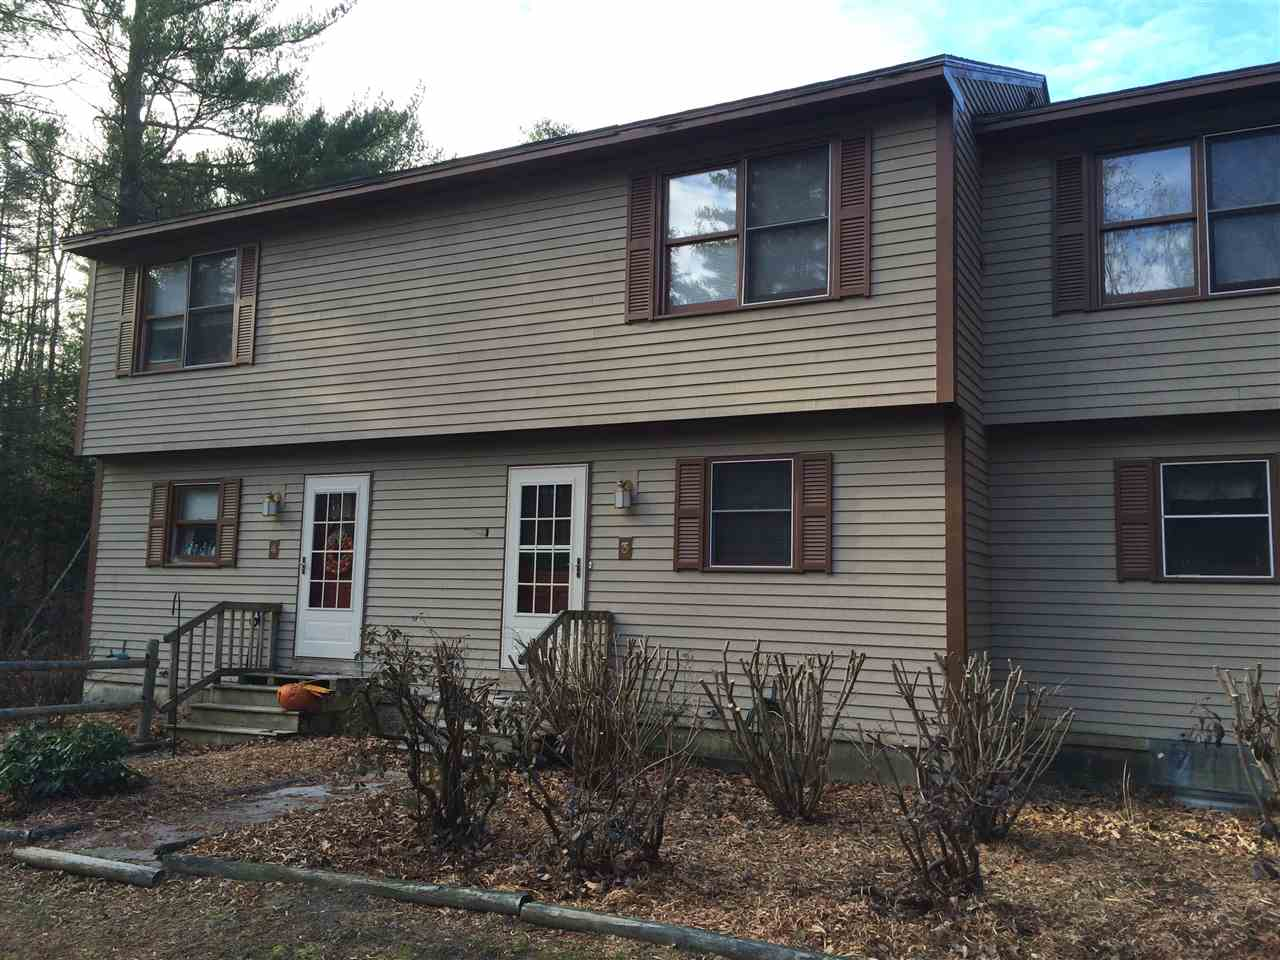 ENFIELD NH Condos for sale